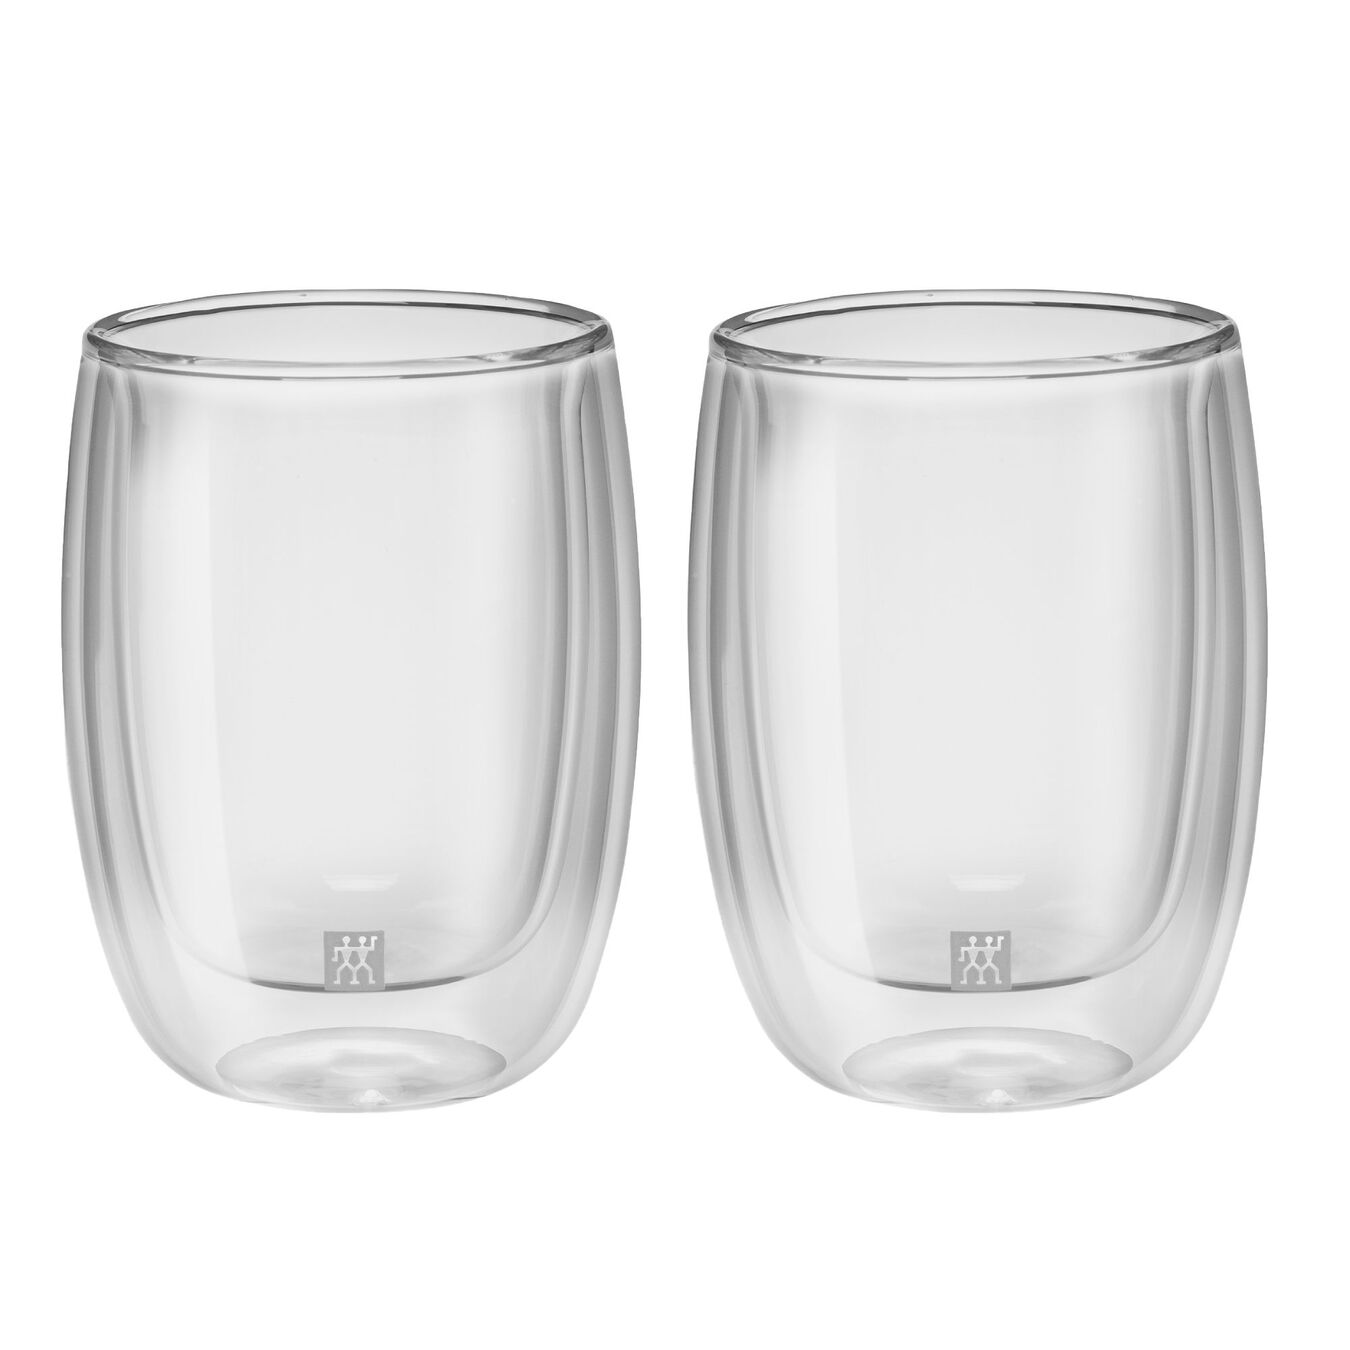 2 Piece Double-Wall Coffee Glass Set,,large 1